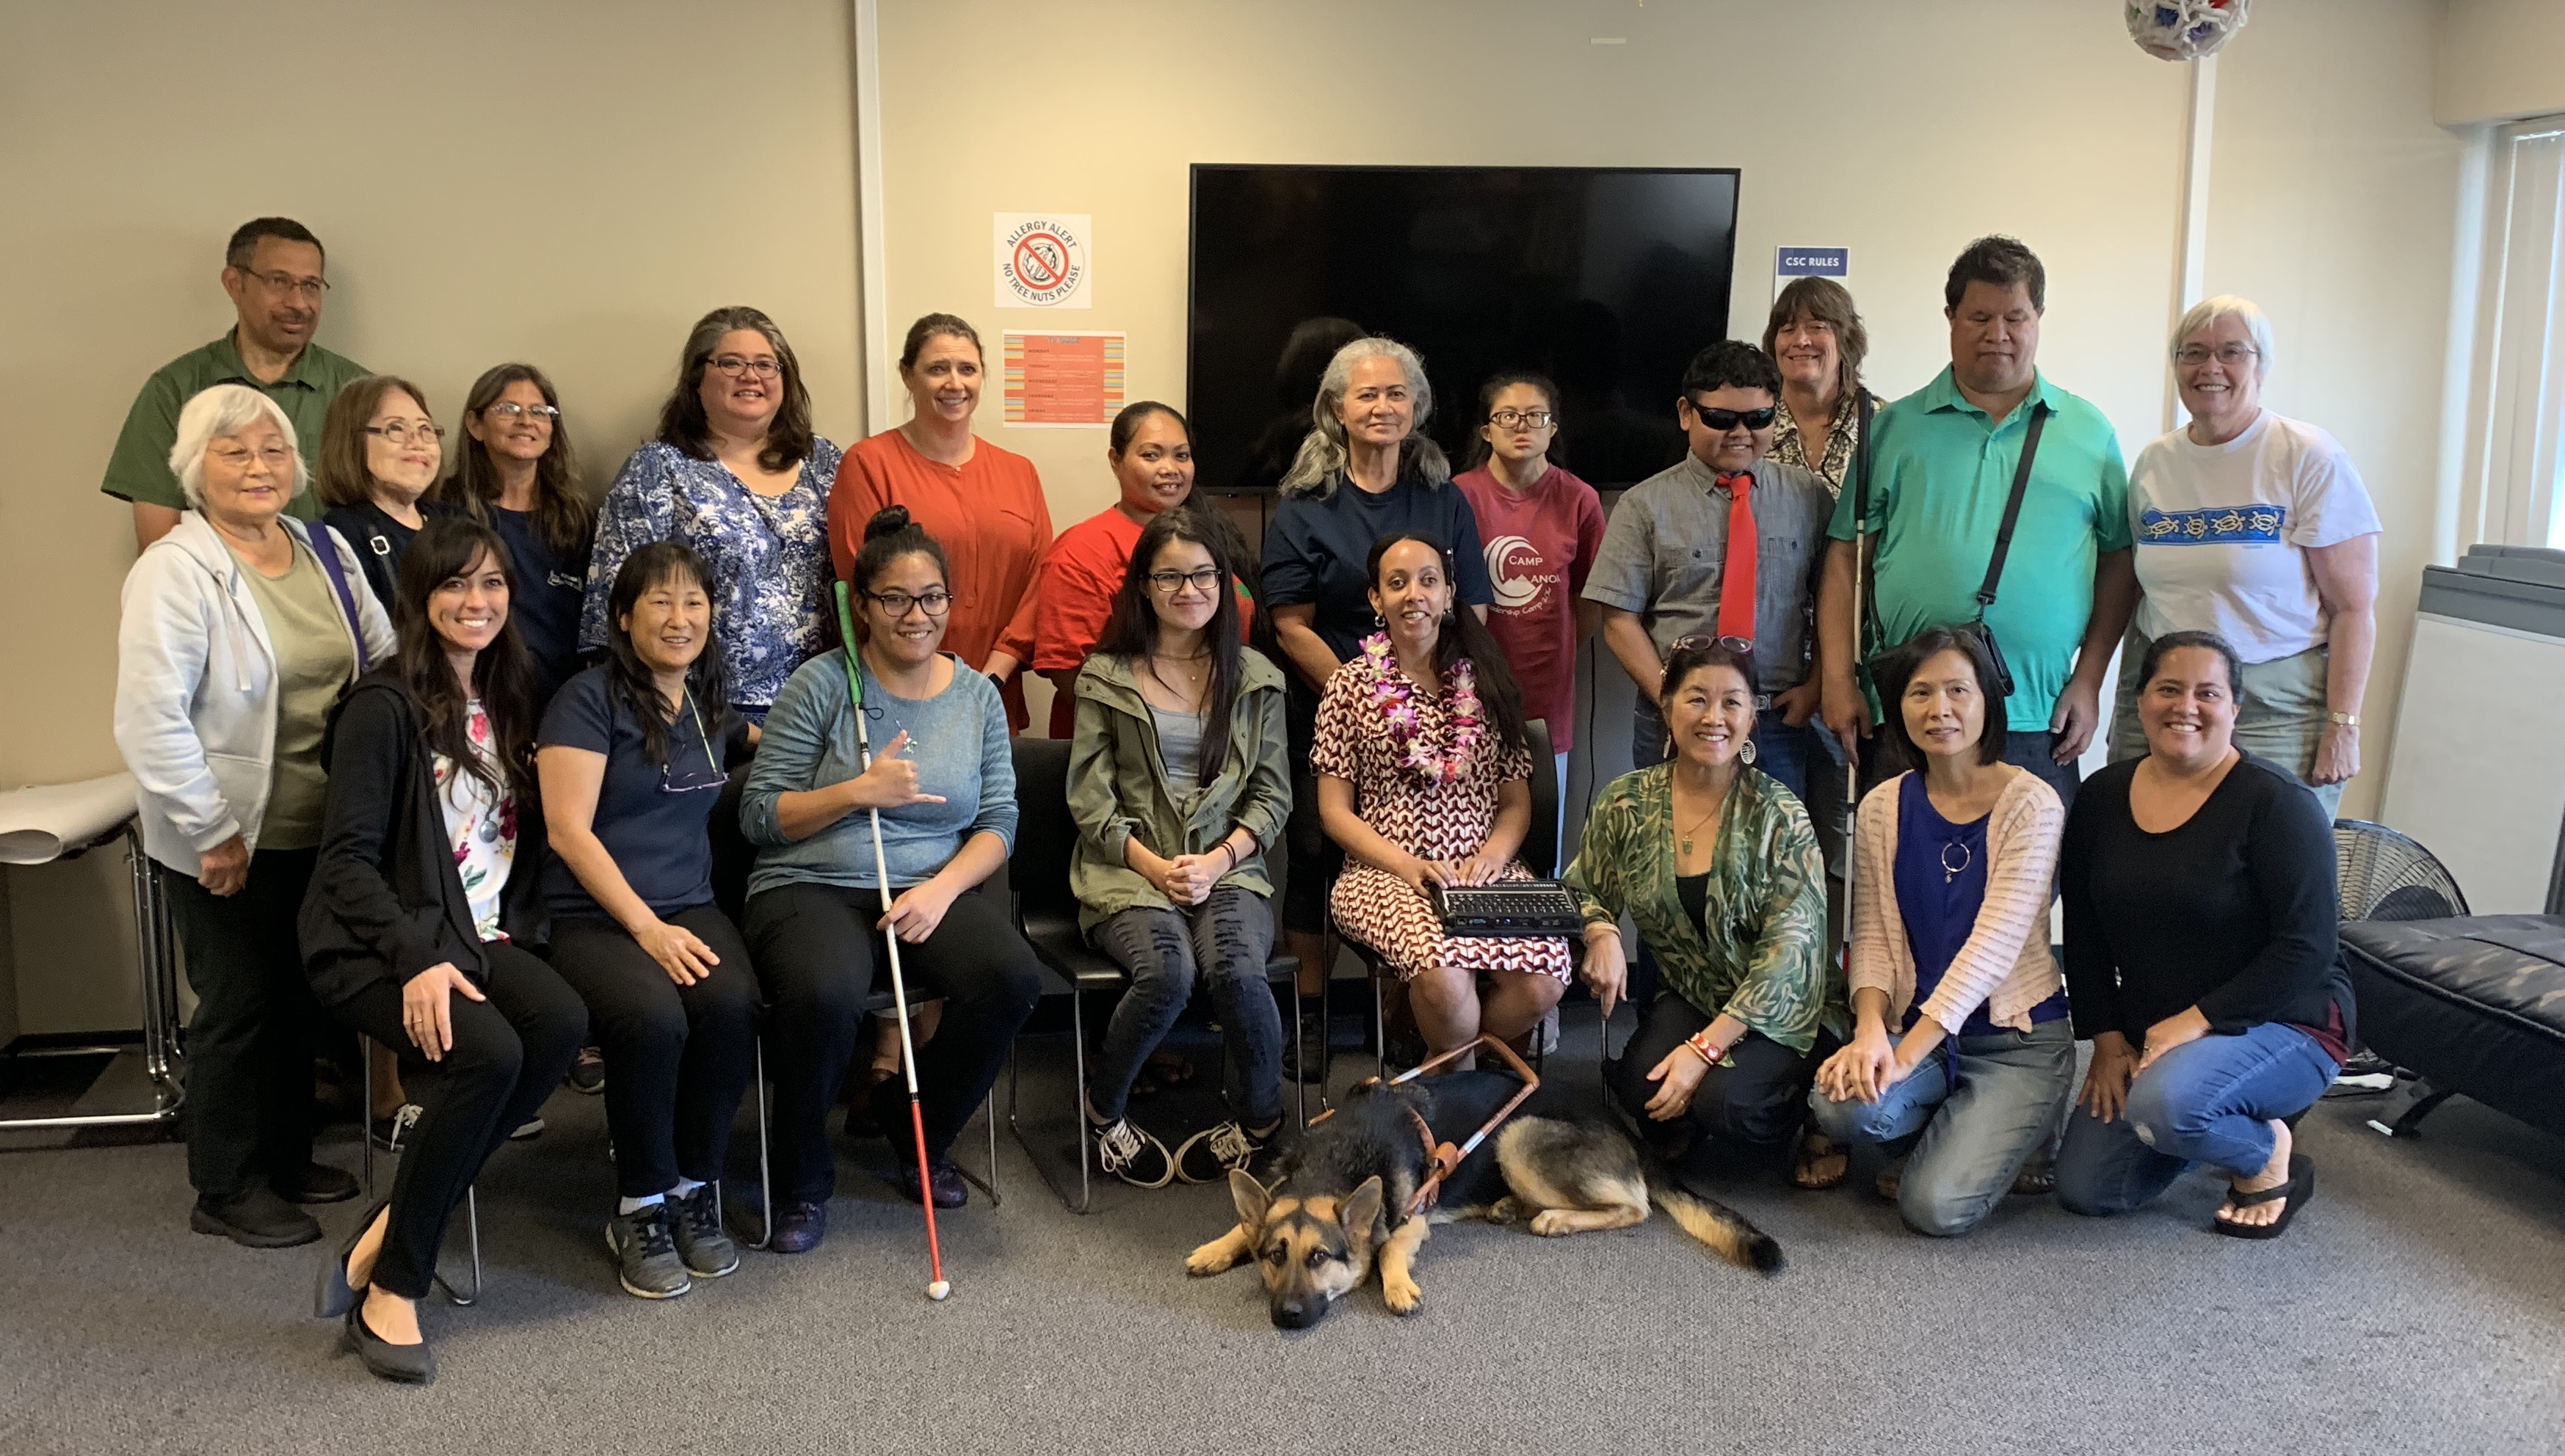 Twenty members of the Hawaii Deafblind community, from high school students to grandparents, stand together. Haben is wearing two leis gifted to her by the kupuna, the elders. One has smooth kukui nuts, the other has orchids, carnations, and tuberoses that smell AMAZING! Mylo, Haben's Seeing Eye dog, is stretched out on the floor in front of Haben